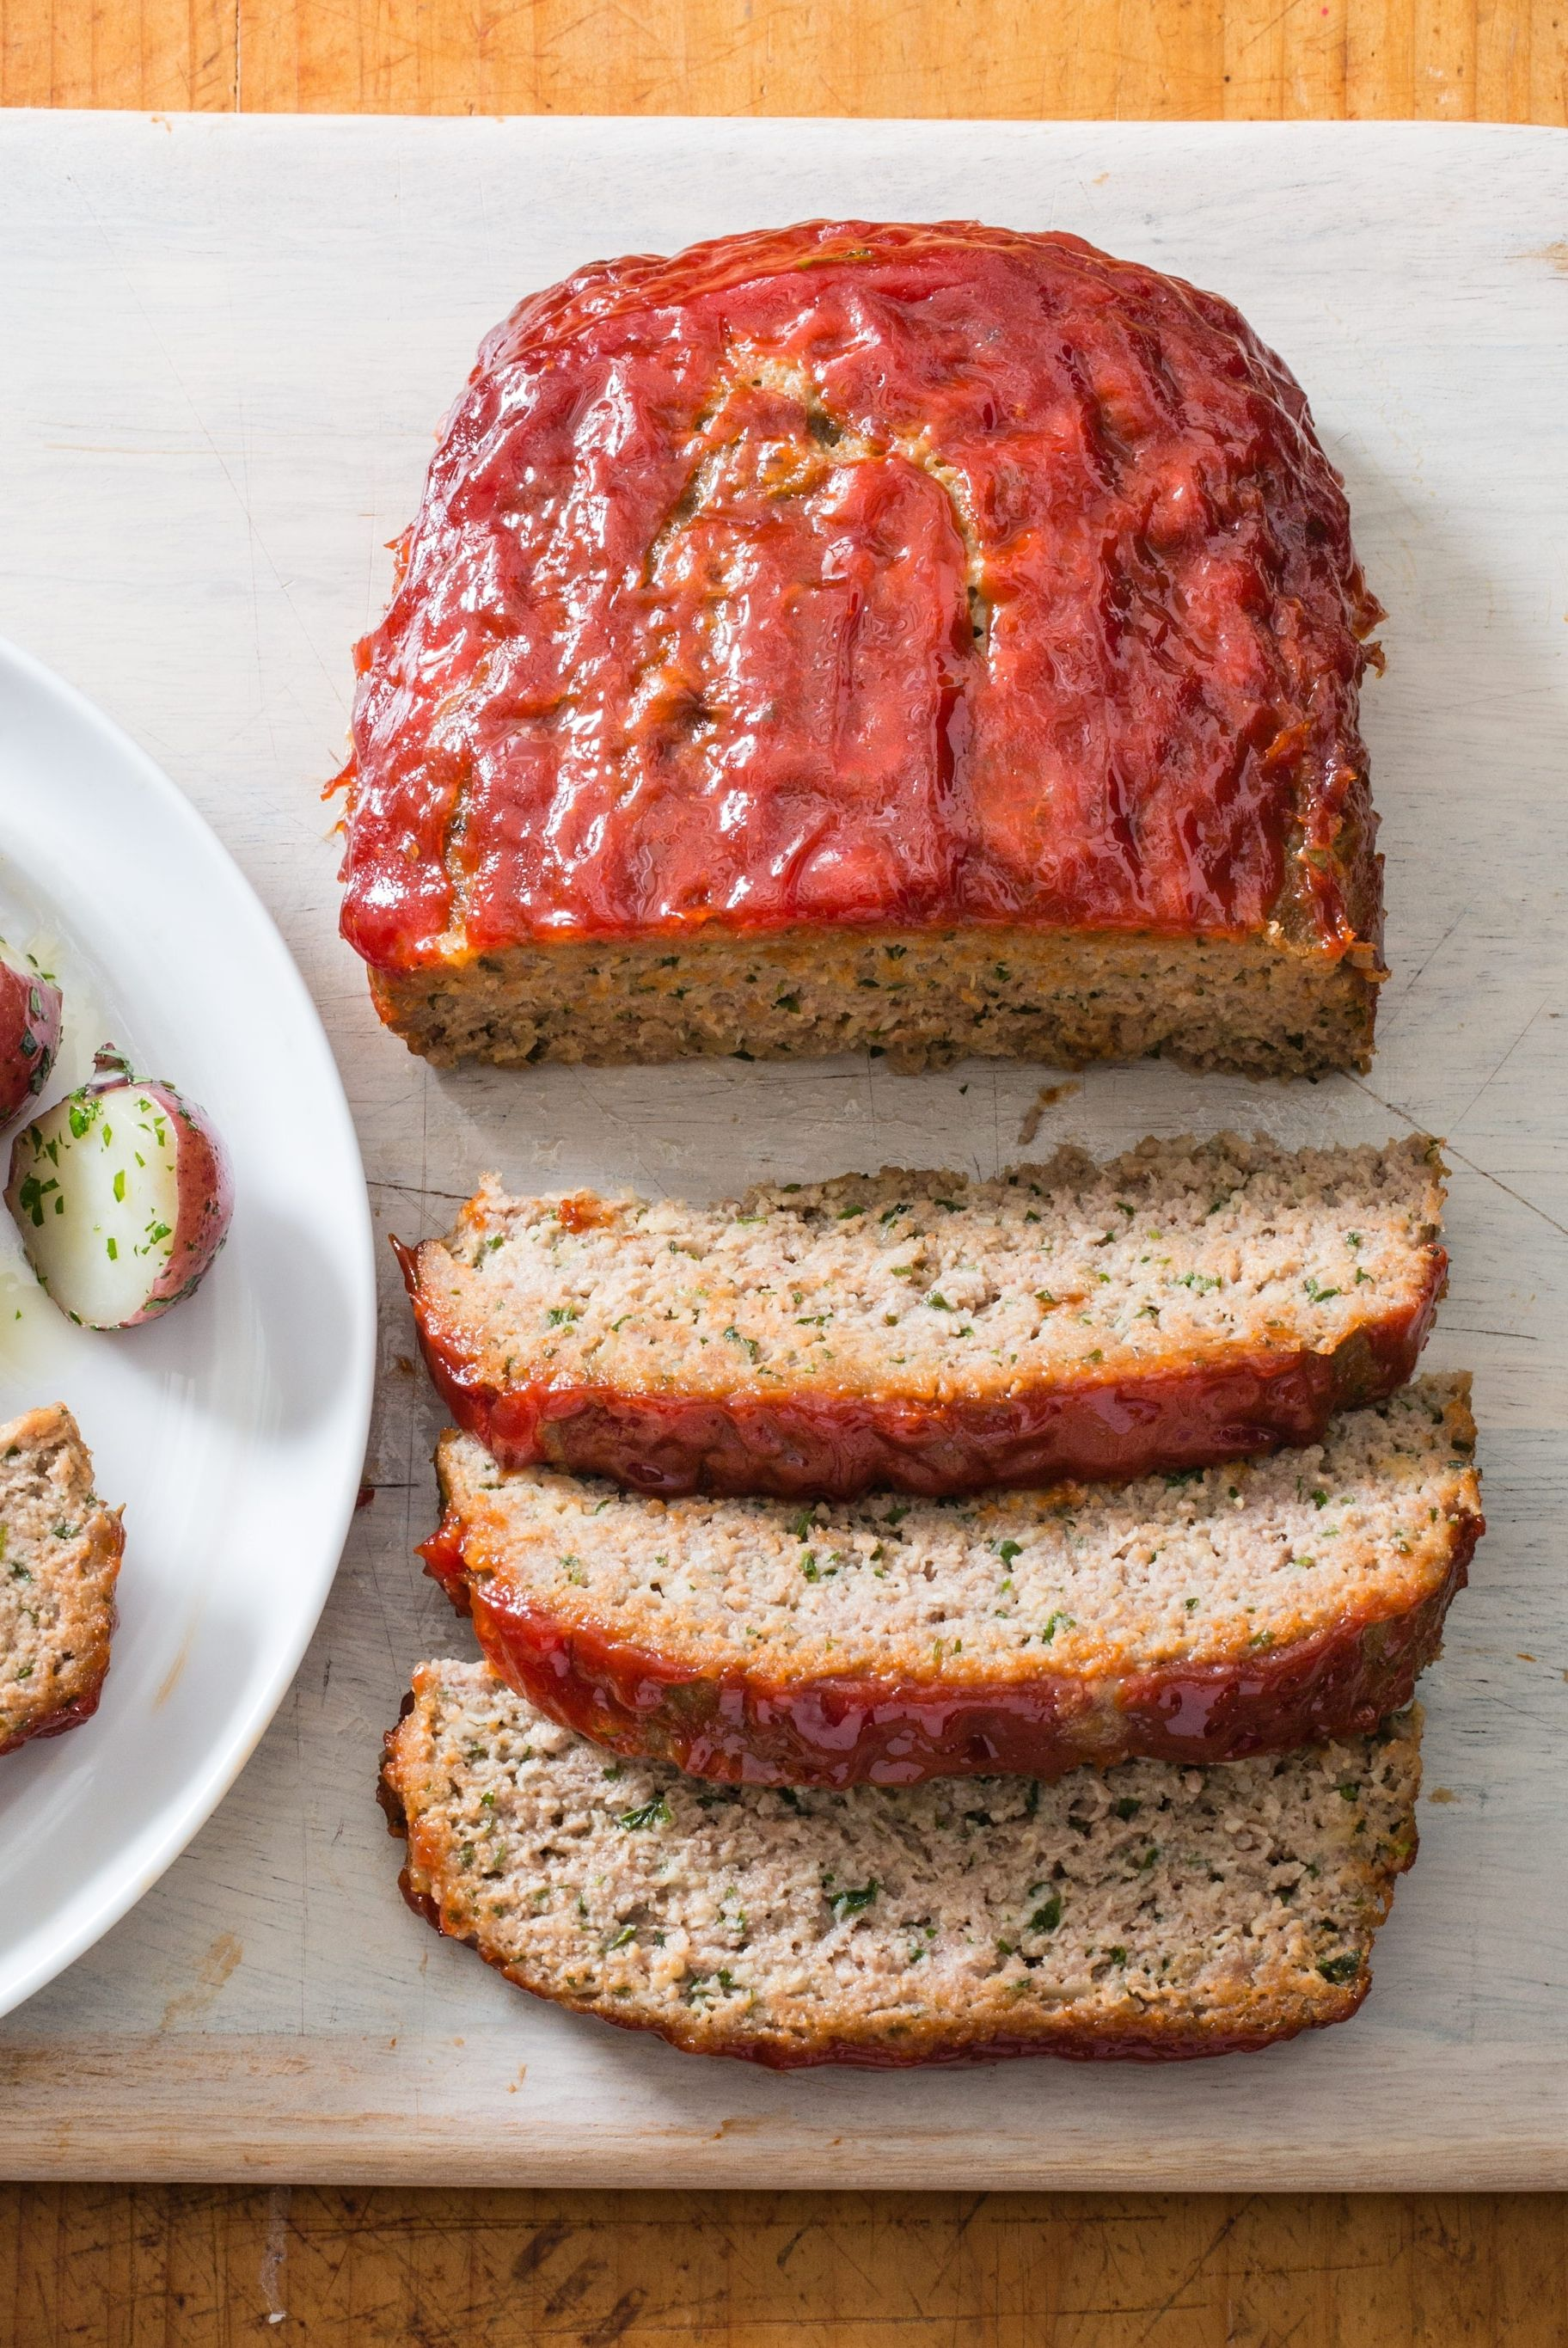 Turkey Meatloaf With Ketchup Brown Sugar Glaze Cook S Illustrated Recipe In 2021 Turkey Meatloaf Recipes Easy Turkey Meatloaf Turkey Meatloaf Recipe Easy